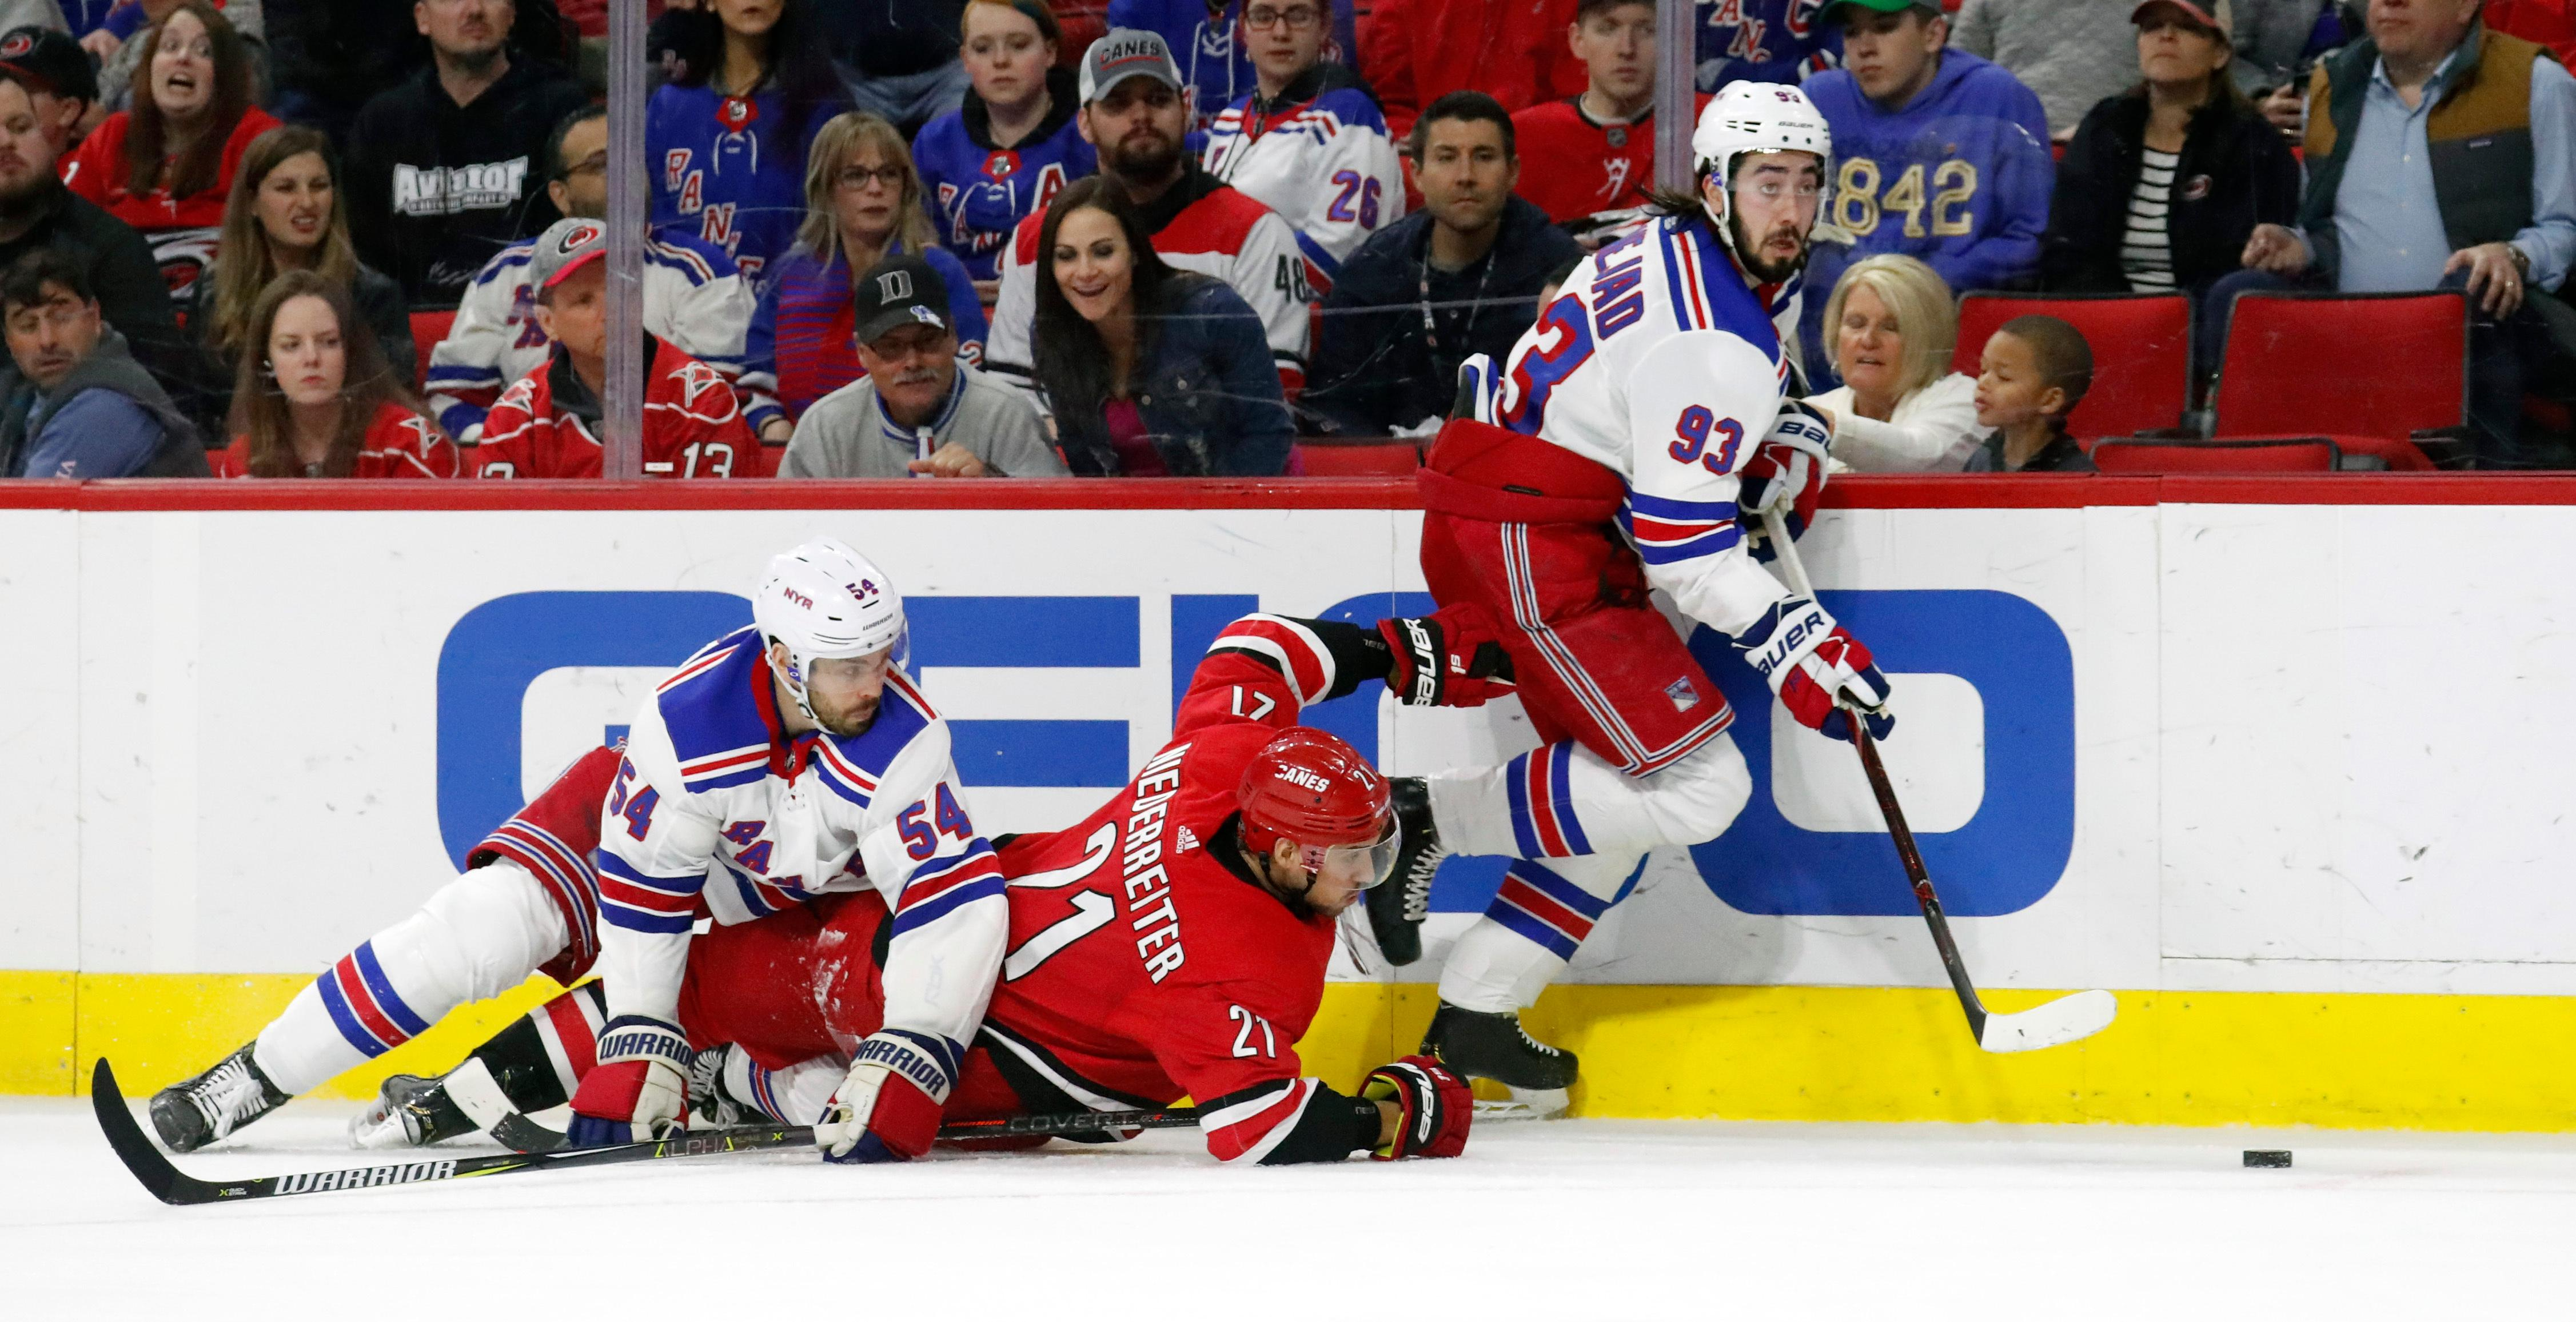 Carolina Hurricanes' Nino Niederreiter (21) of Switzerland battles the New York Rangers' Adam McQuaid (54) and Mika Zibanejad (93) of Sweden for the puck during the second period of an NHL hockey game in Raleigh, N.C., Tuesday, Feb. 19, 2019. (AP Photo/Chris Seward)